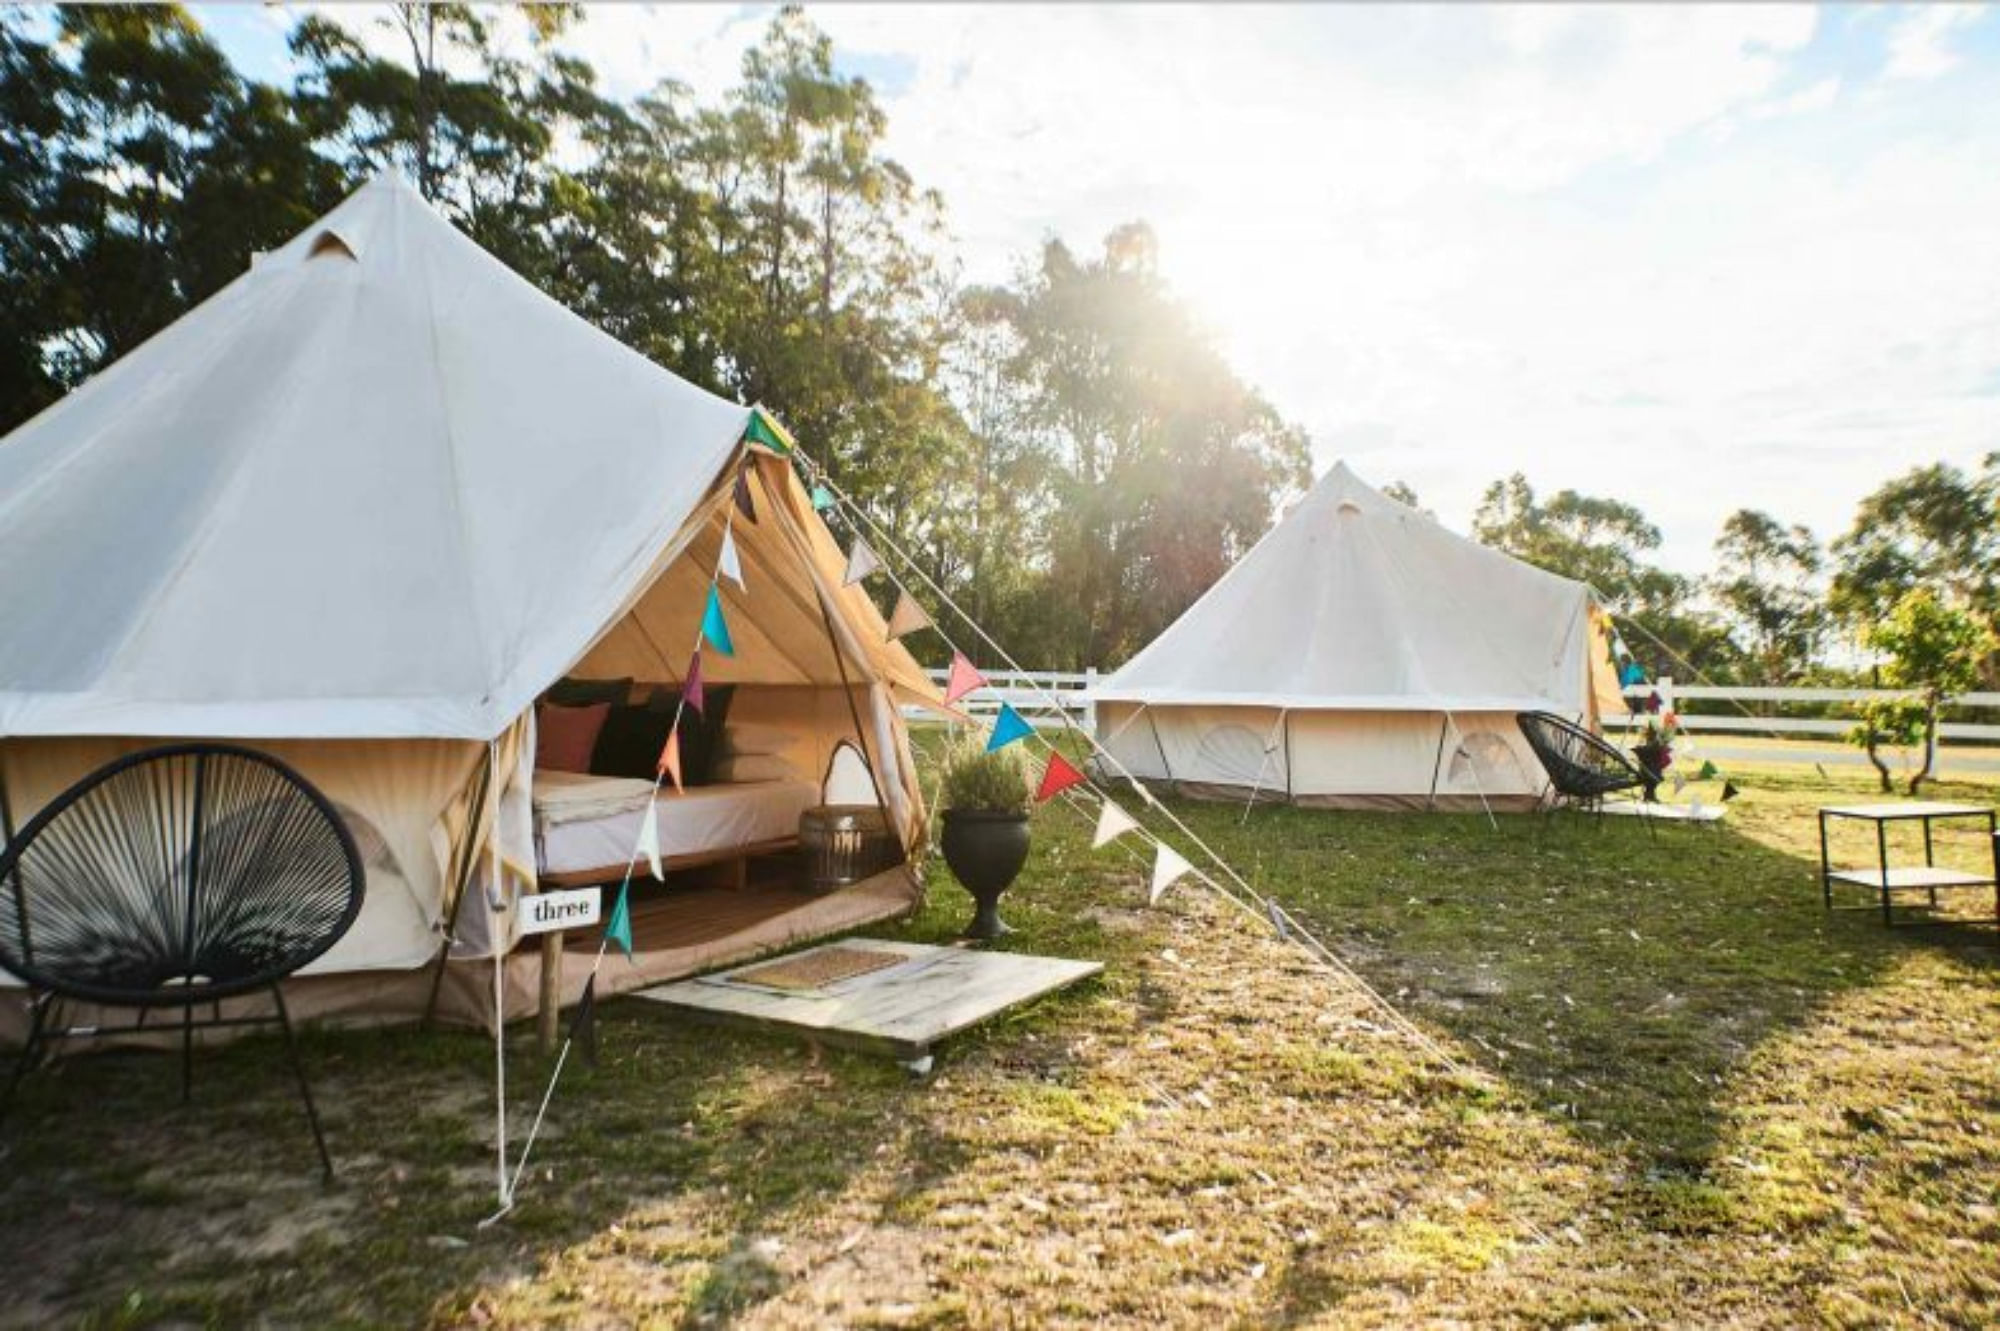 Glamping at The Woods Farm